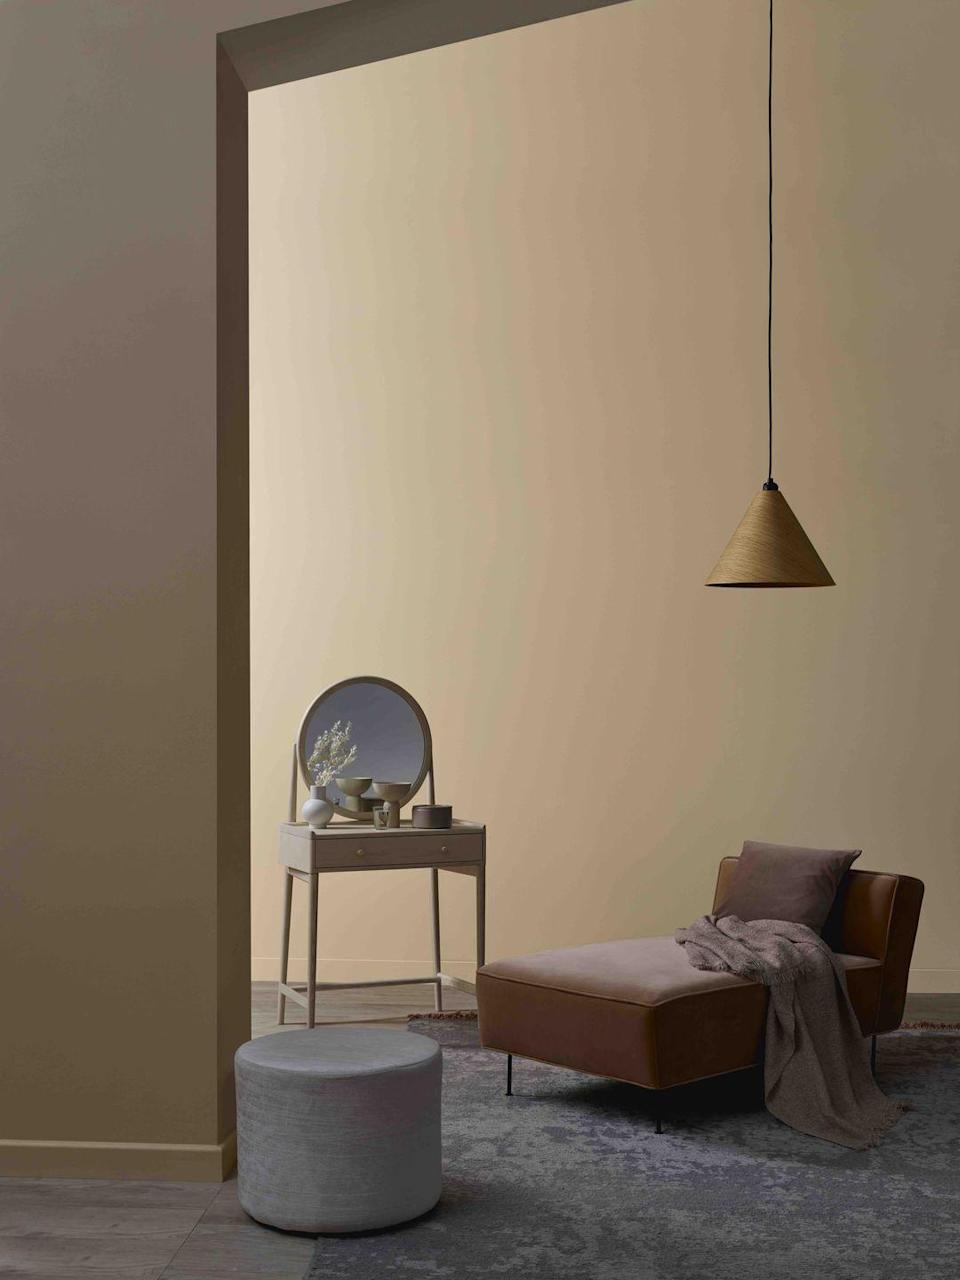 "<p>The current revival for all things nineties has extended to interiors. When it comes to decorating, that means a reignited love affair with warm taupes and soft beige. Colours which are perfectly suited to a cocooning snug, such as '<a href=""https://www.crownpaints.co.uk/products/elle-decoration-by-crown/powder---flat-matt/delicately-dark-no.-568/18104"" rel=""nofollow noopener"" target=""_blank"" data-ylk=""slk:Delicately Dark"" class=""link rapid-noclick-resp"">Delicately Dark</a>', shown here.</p>"